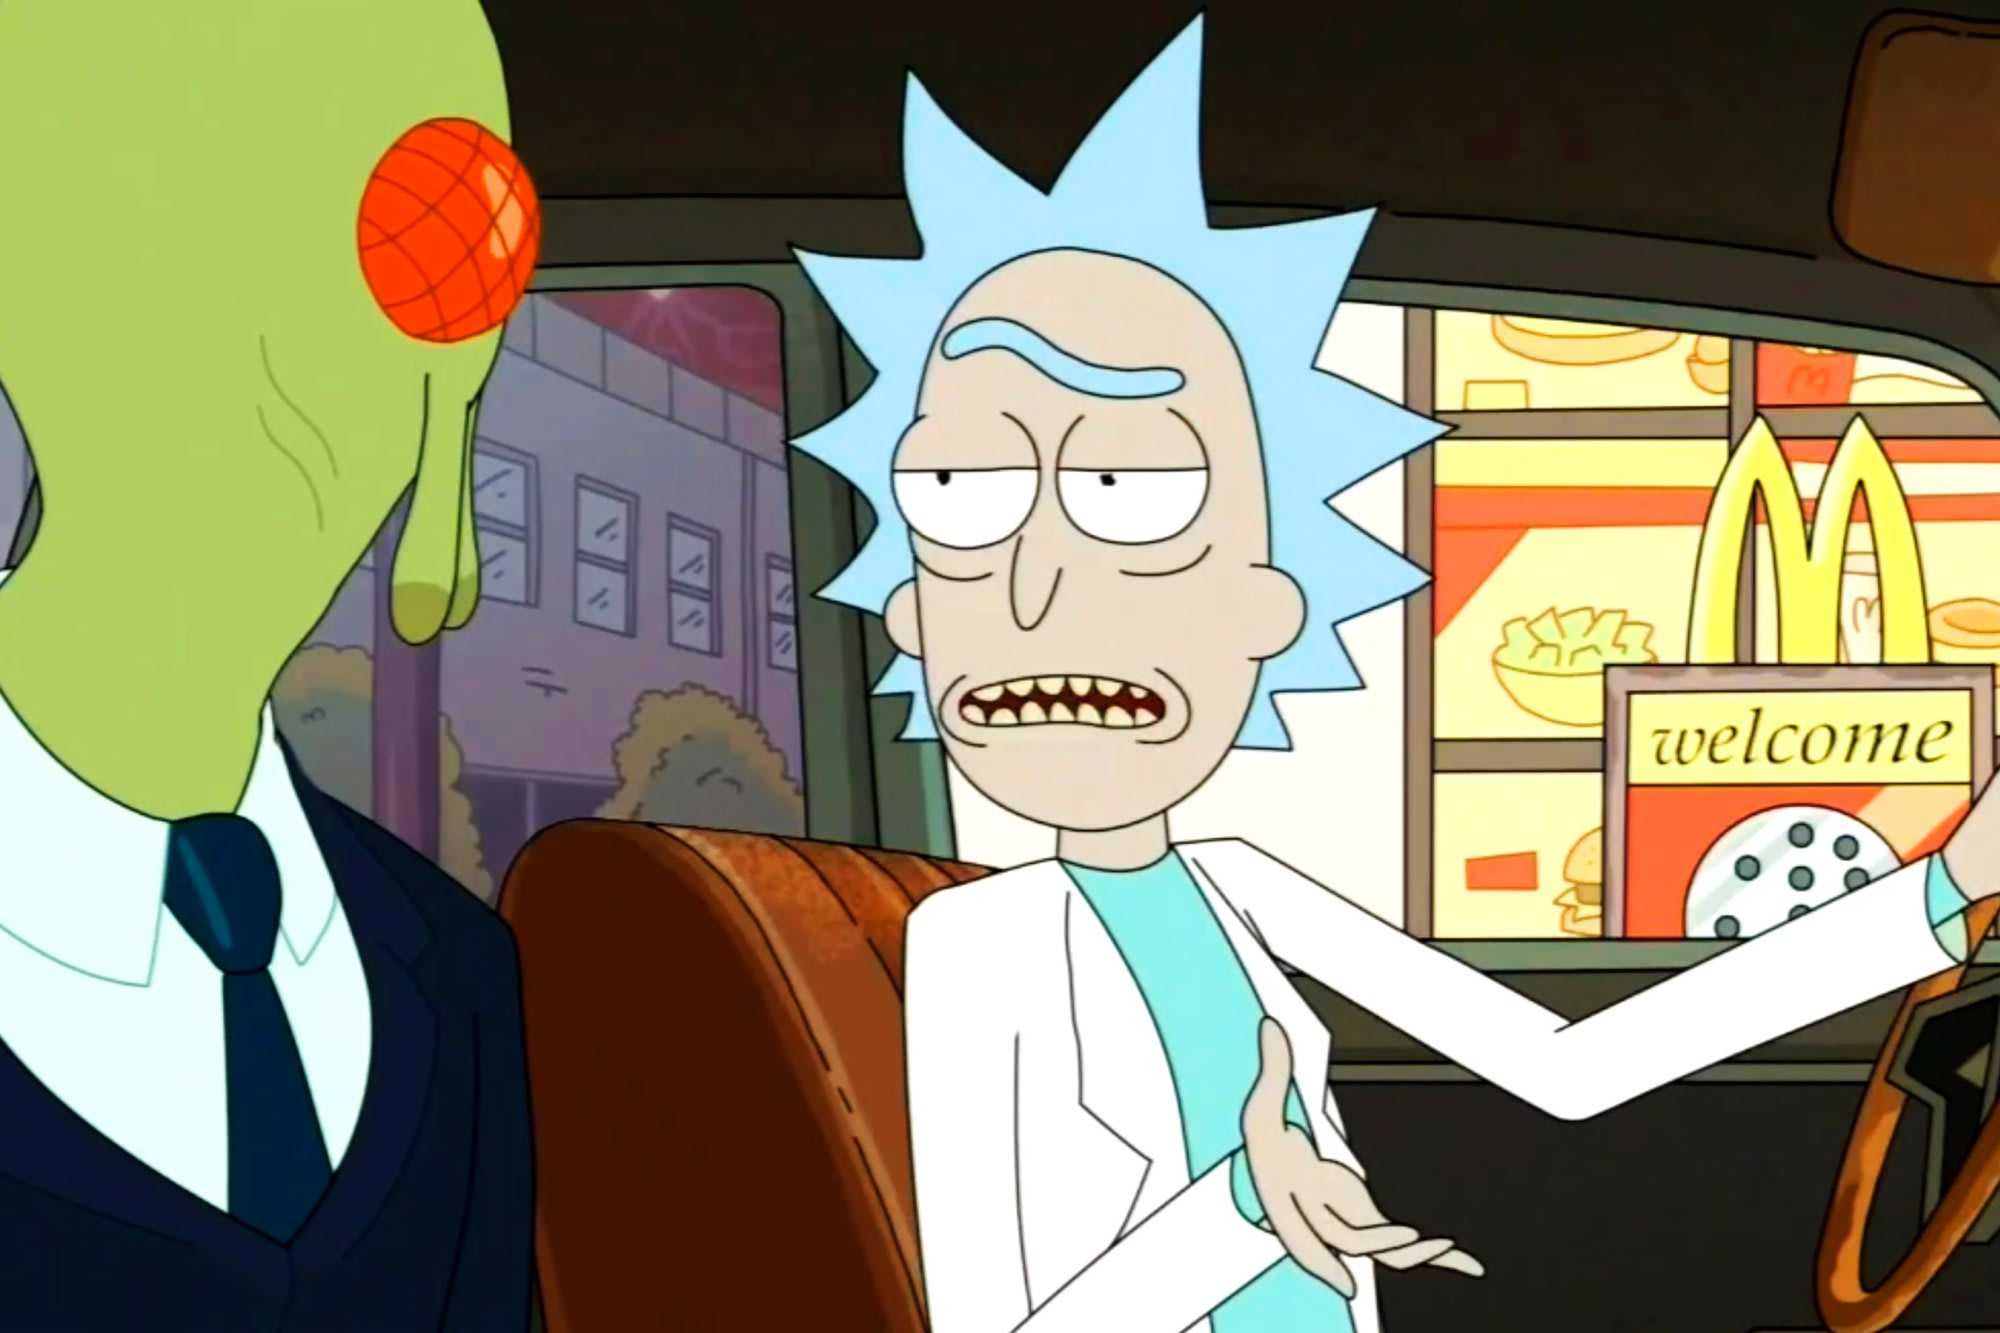 Rick in this scene really represents me right now. What